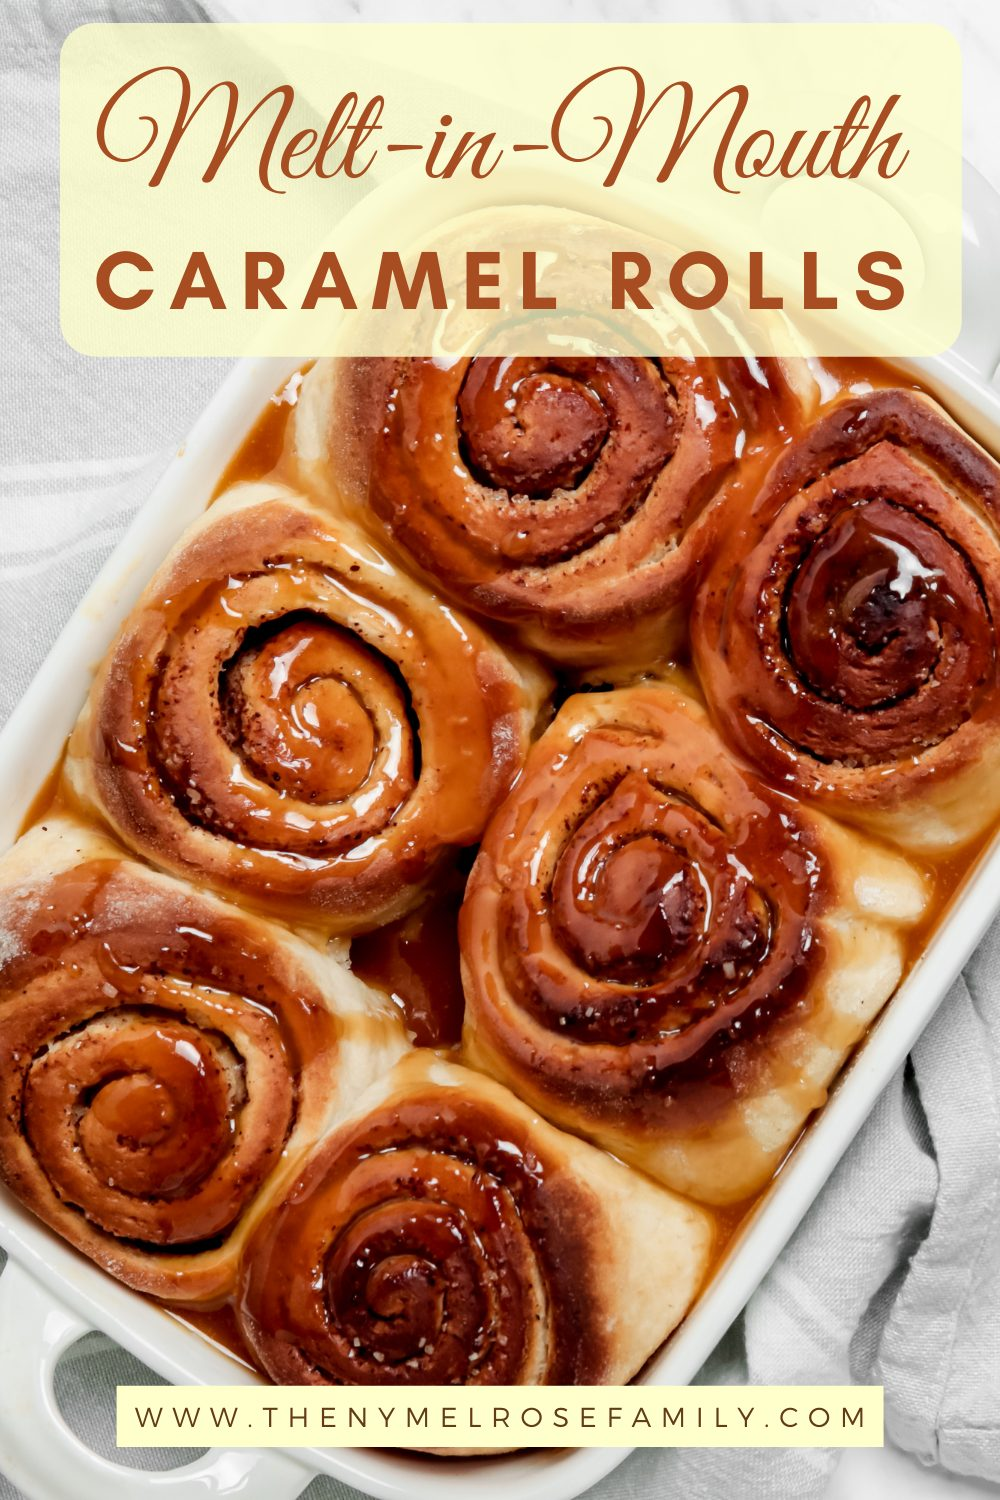 These melt-in-your-mouth golden caramel rolls are easy to make and will be the best breakfast you will ever have. #caramelrolls #holidaybreakfast #dessertrecipe #homemade via @jennymelrose